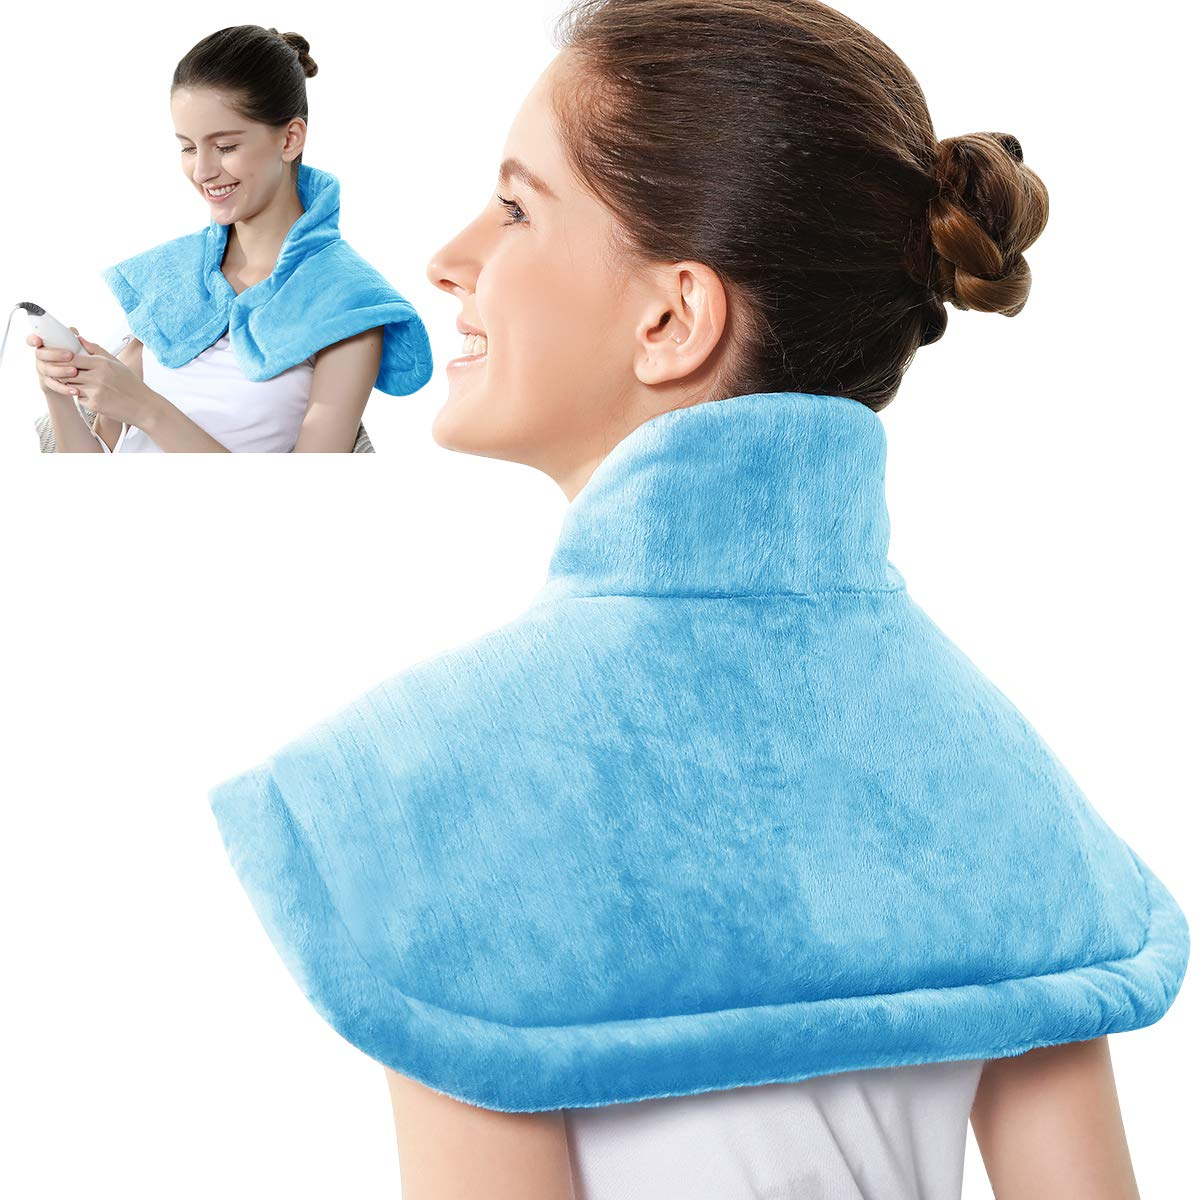 REVIX Electric Heating Pad for Neck and Shoulders Pain Relief with Auto-Off, Soft Micromink Neck Heated Wrap with Moist Therapy, 4 Heat Settings, UL Listed, Sky Blue